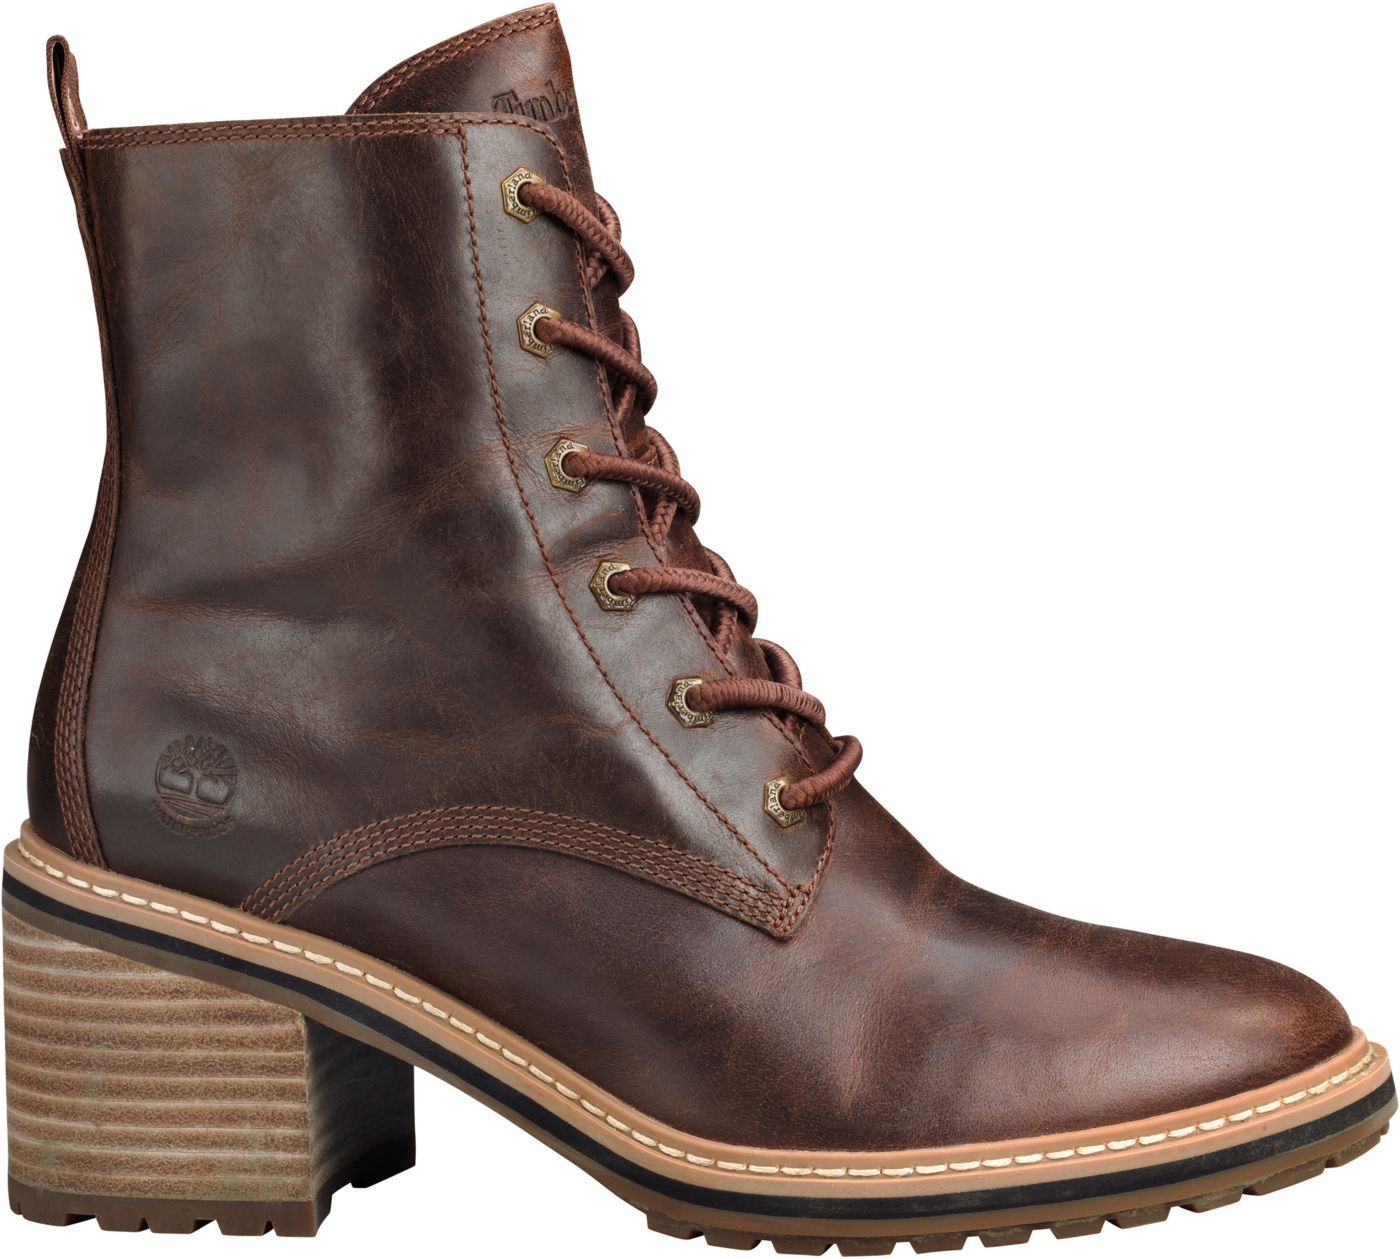 Timberland Women's Sienna High Side Zip Waterproof Casual Boots